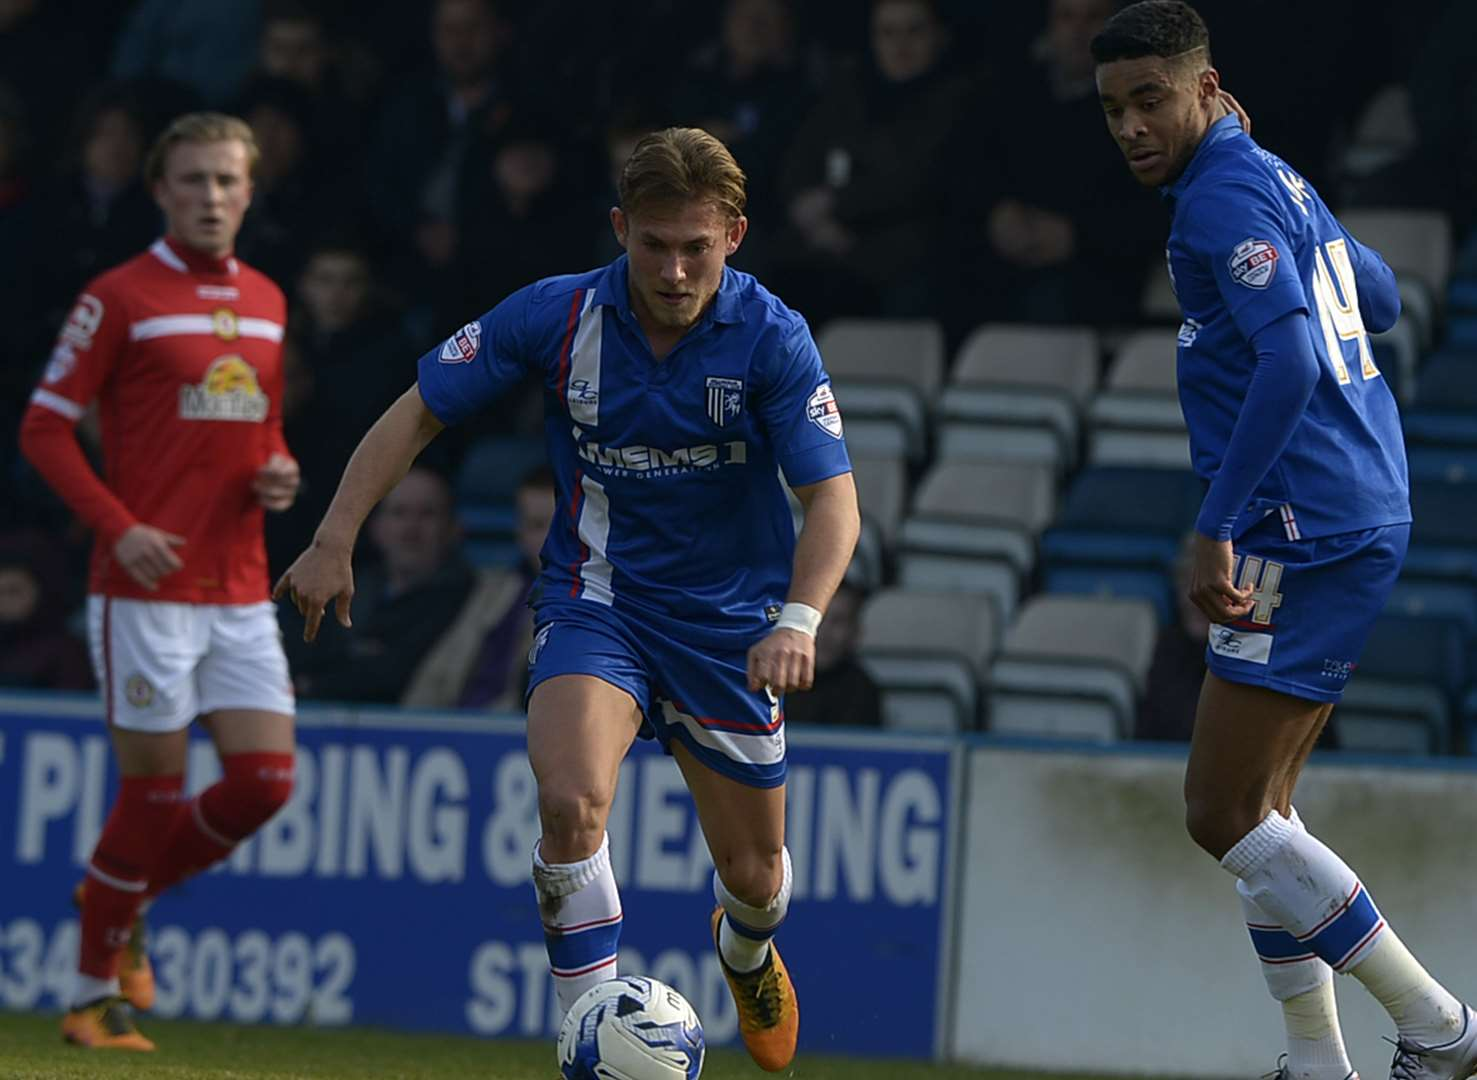 Gillingham v Crewe Alexandra - in pictures